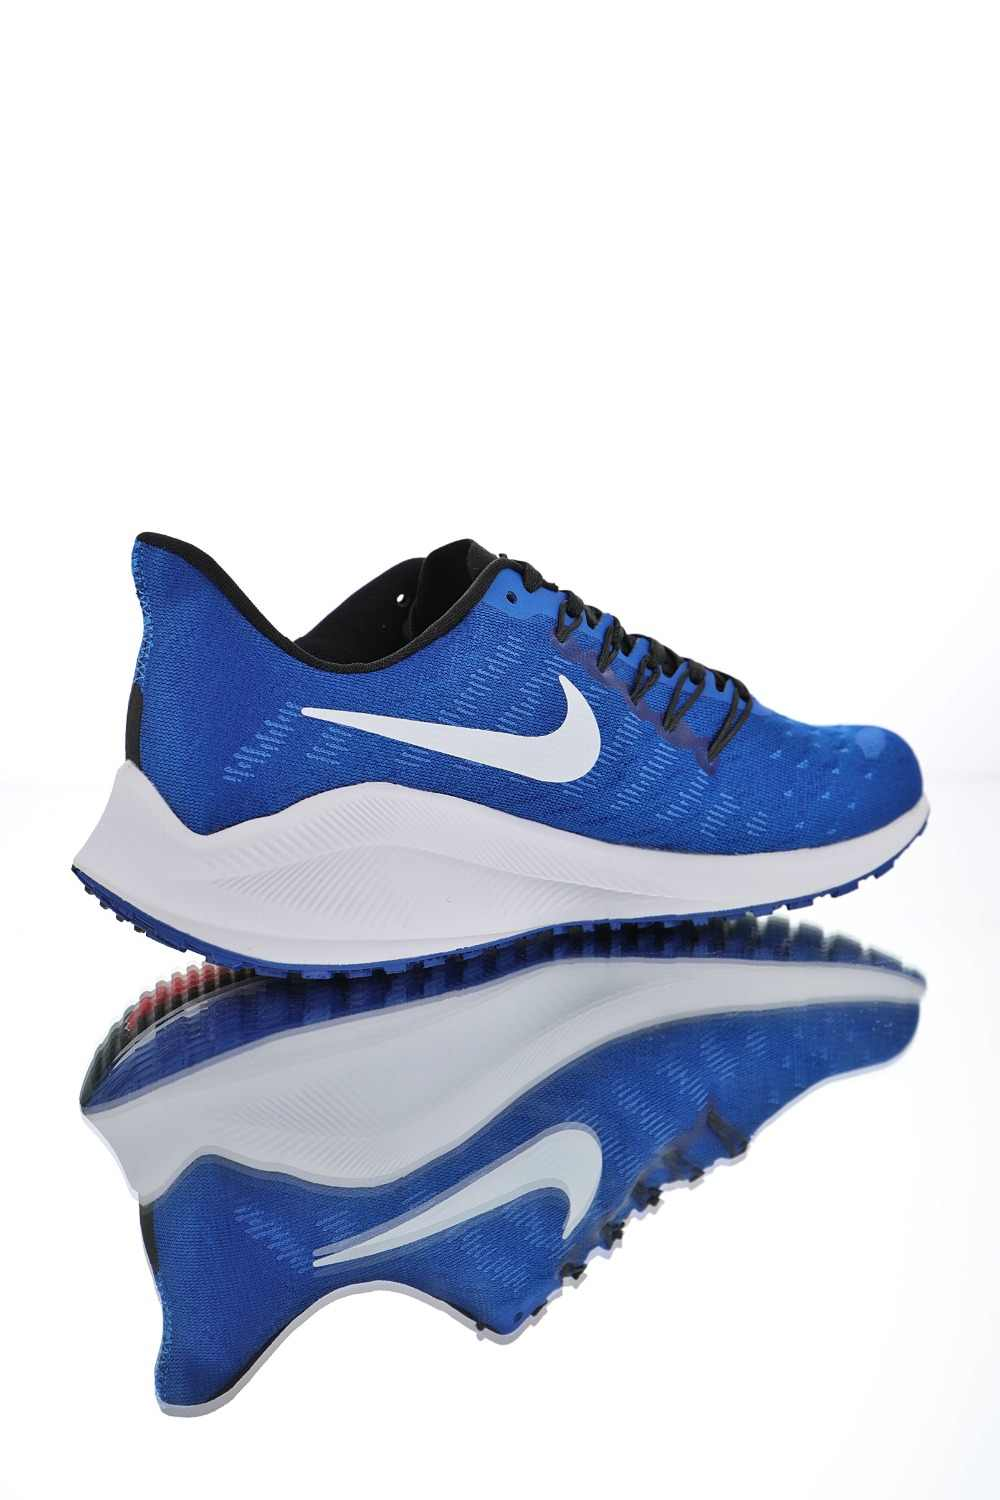 6a59c3bf91917 ... Original Nike Air Zoom Vomero 14 Men s Breathable Running Shoes Sports  Sneakers Trainers Nike Shoes AH7857 ...